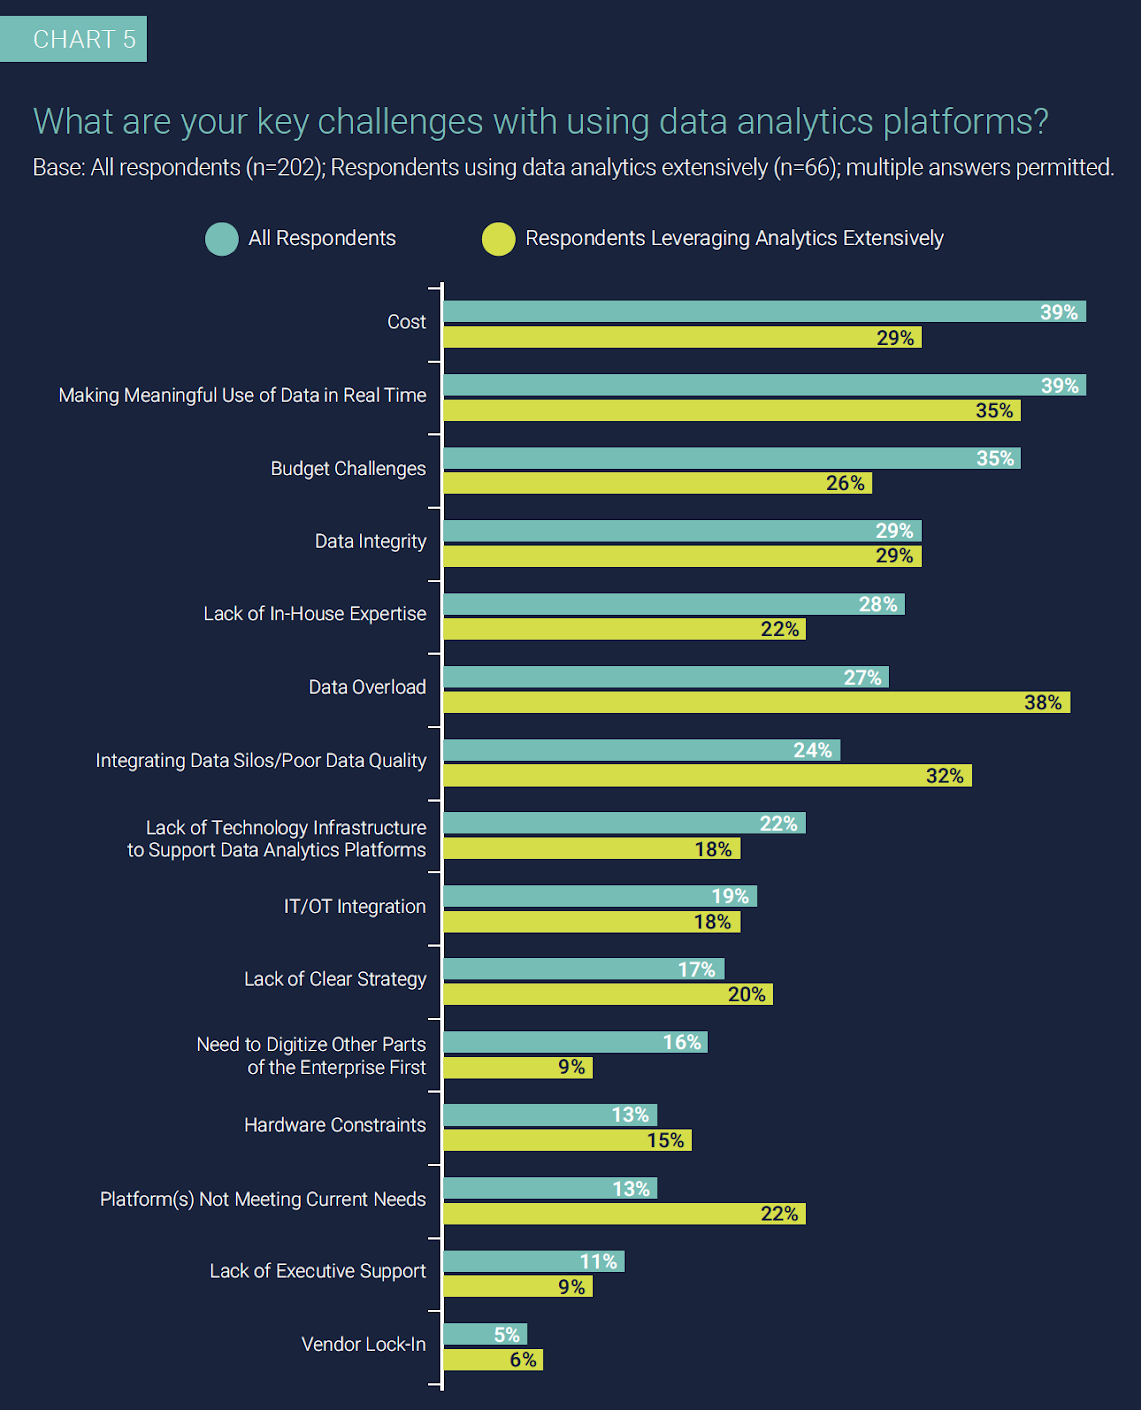 Chart 5: What are your key challenges with using data analytics platforms? Base: All respondents (n=202); Respondents using data analytics extensively (n=66); multiple answers permitted.